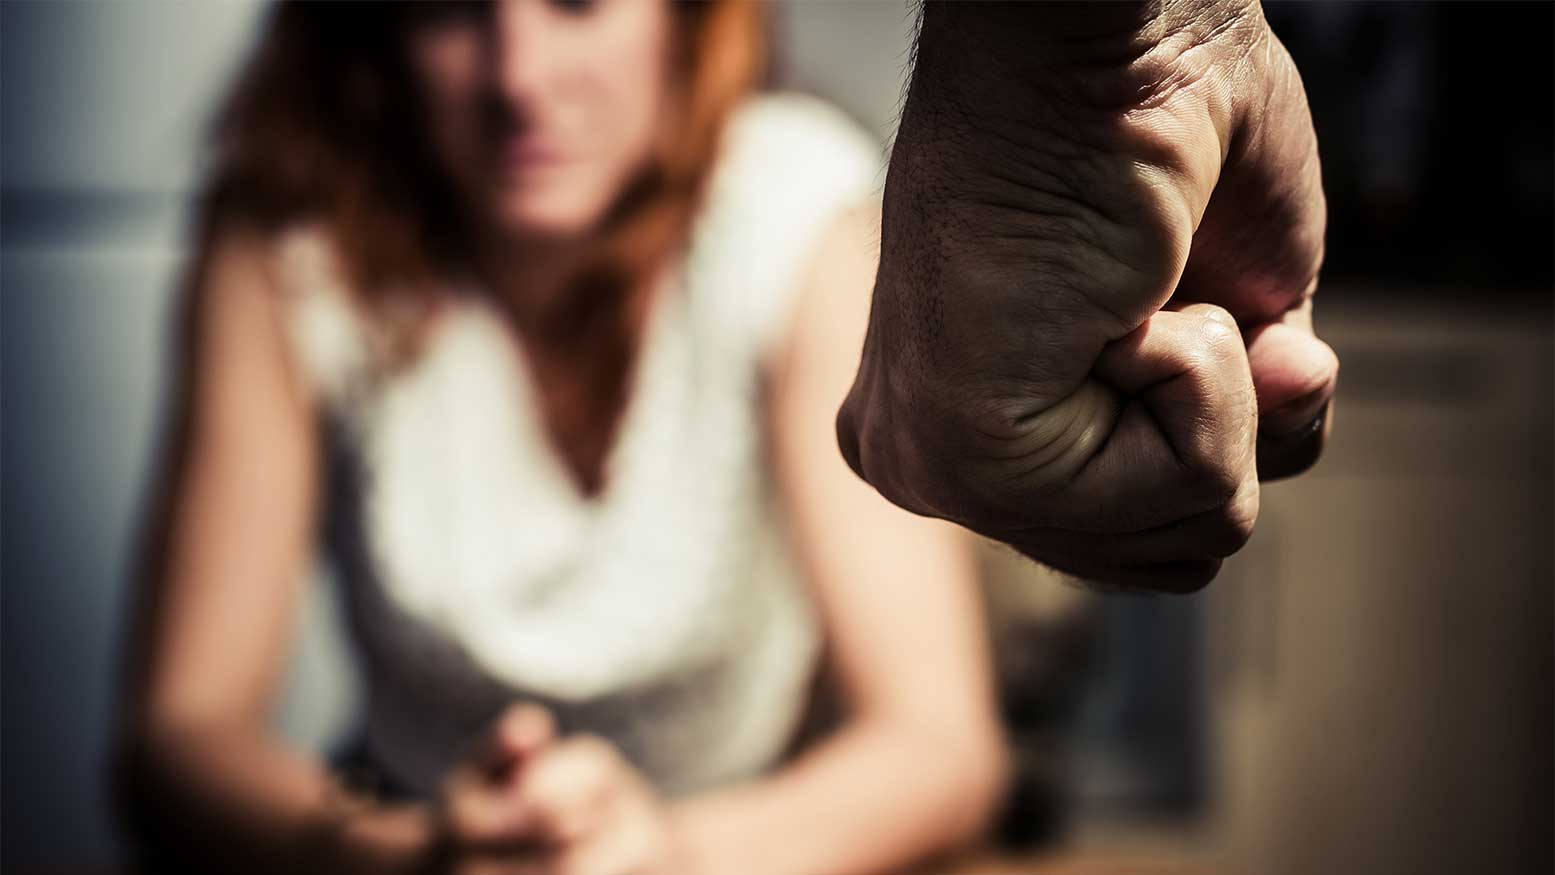 A clenched fist with a blurred woman in the background